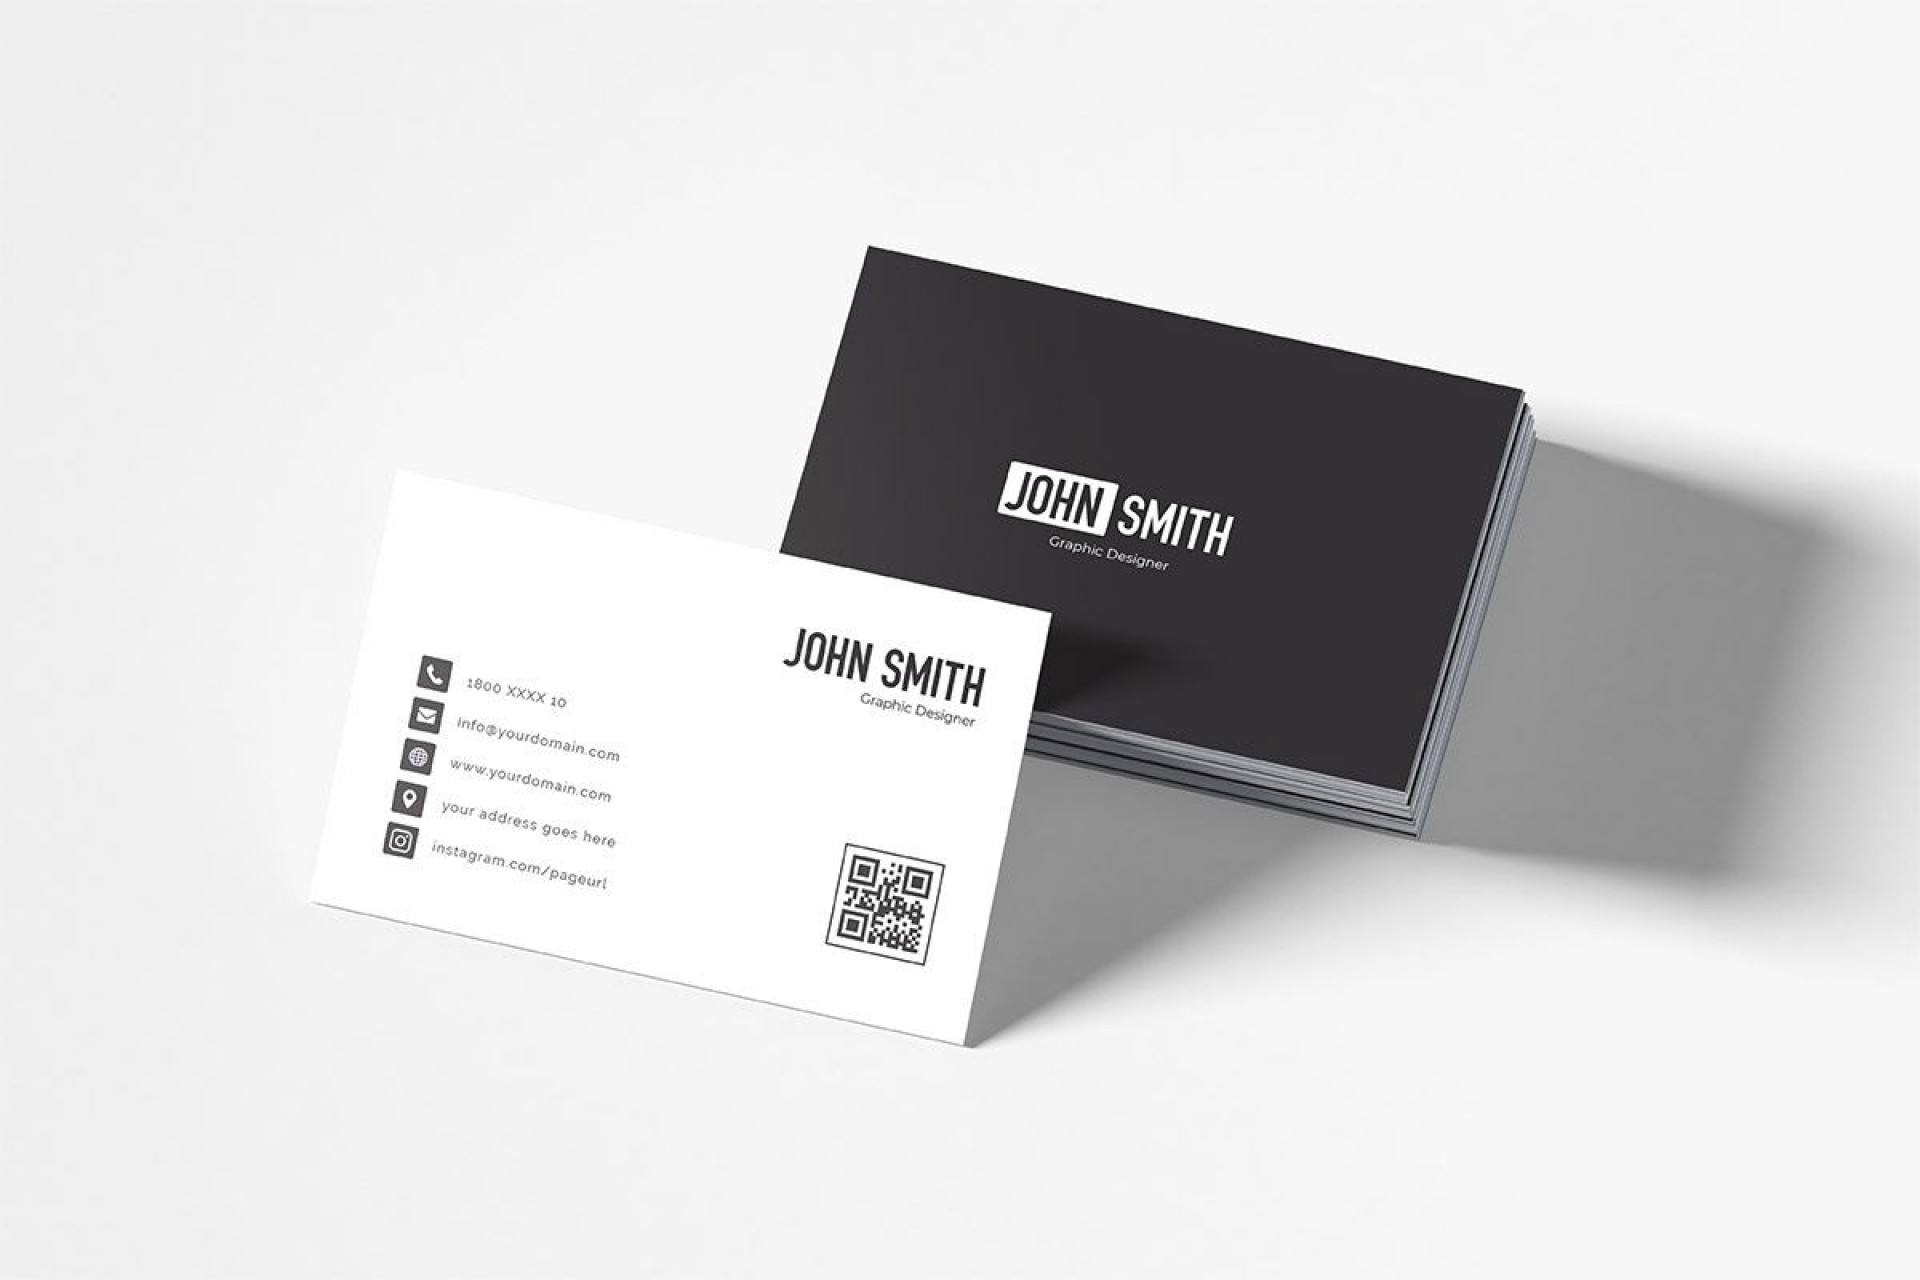 008 Unusual Minimal Busines Card Template Free High Resolution  Easy Simple Download1920